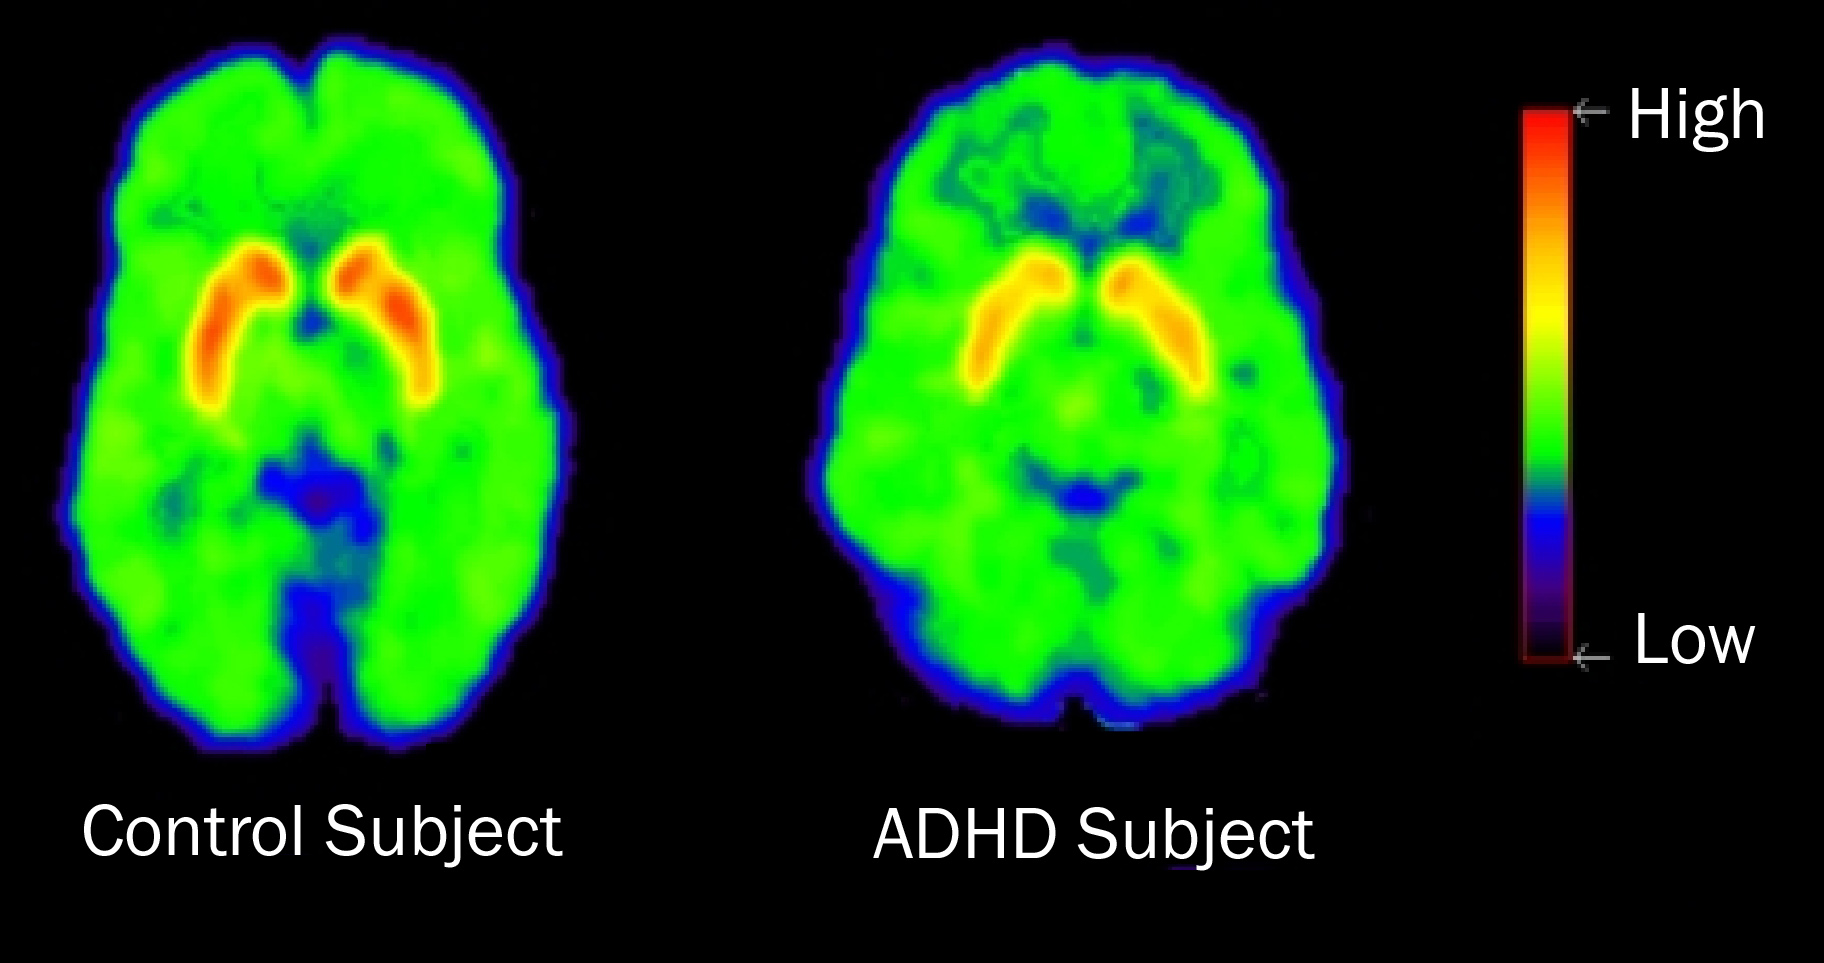 PET scan showing brain activity for someone with ADHD